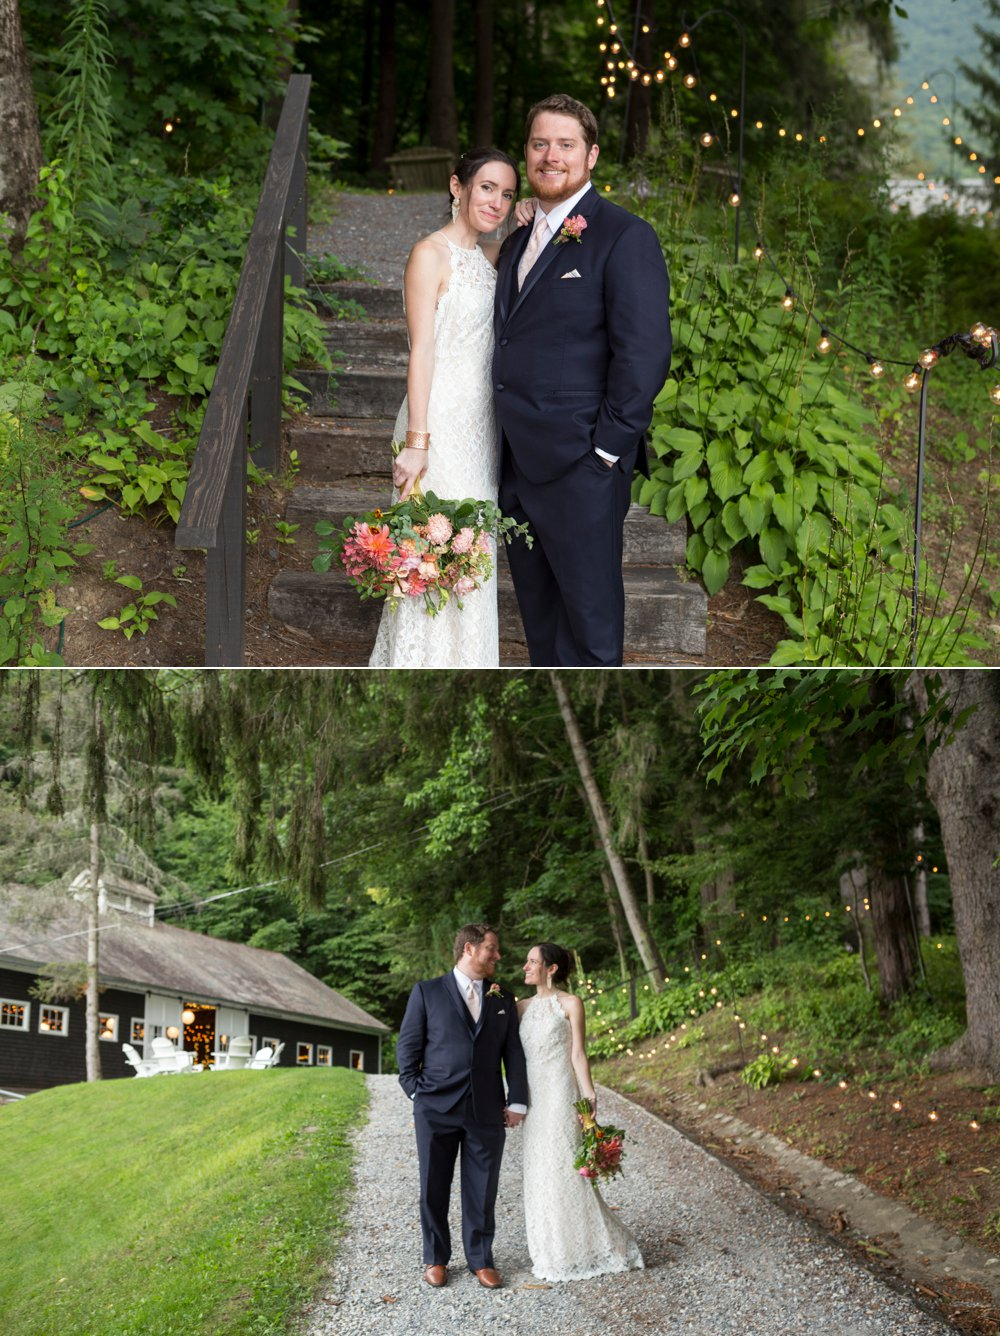 SomerbyJonesPhotography_WestMountainInnWedding_WestMountainInn_RusticVermontWedding_0032.jpg